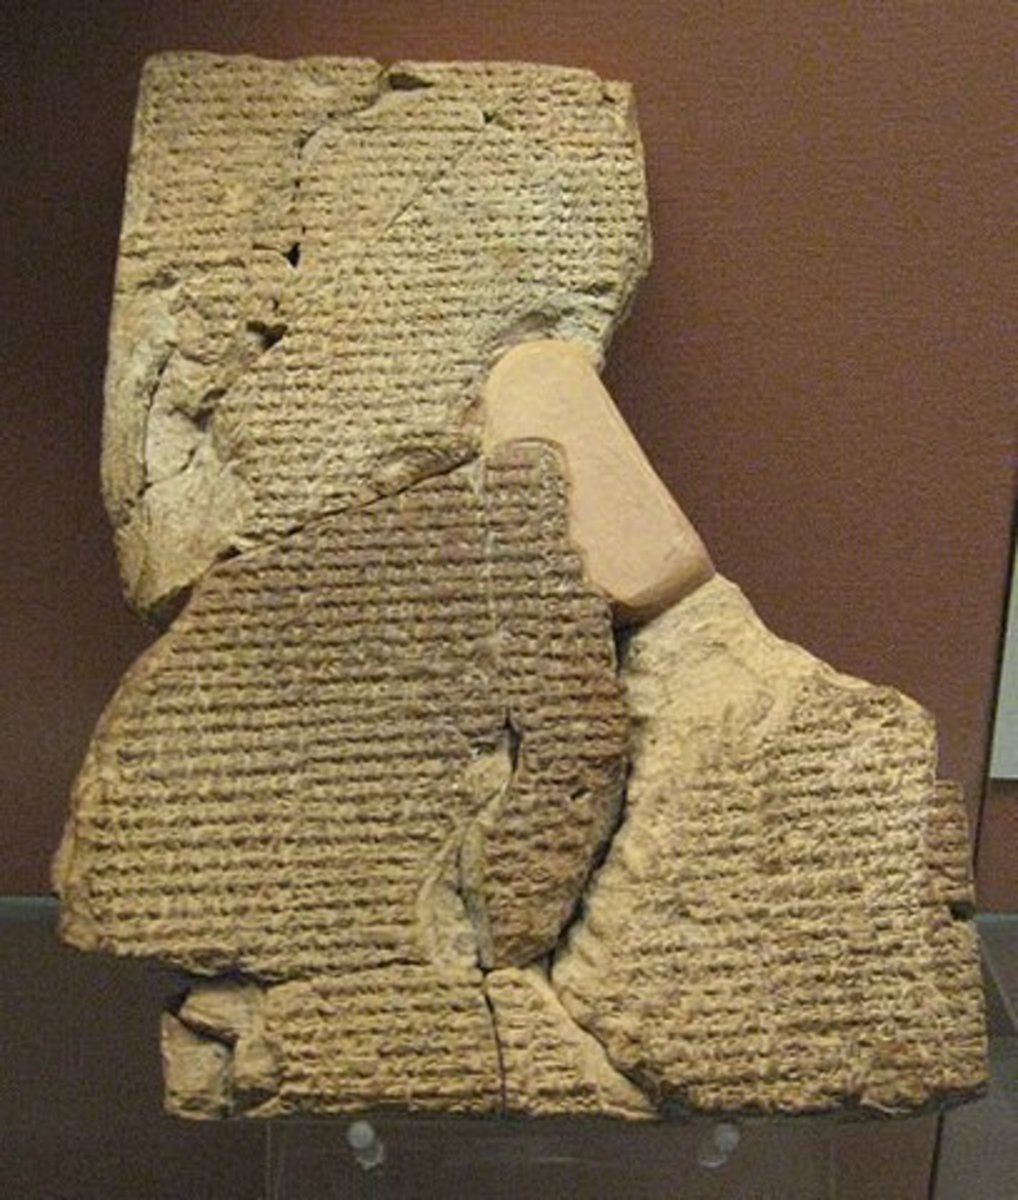 The epic of Atrahasis was written on clay tablets in the cuneiform writing style of Sumer. Noah's Ark was written on parchment, about a millennium later.